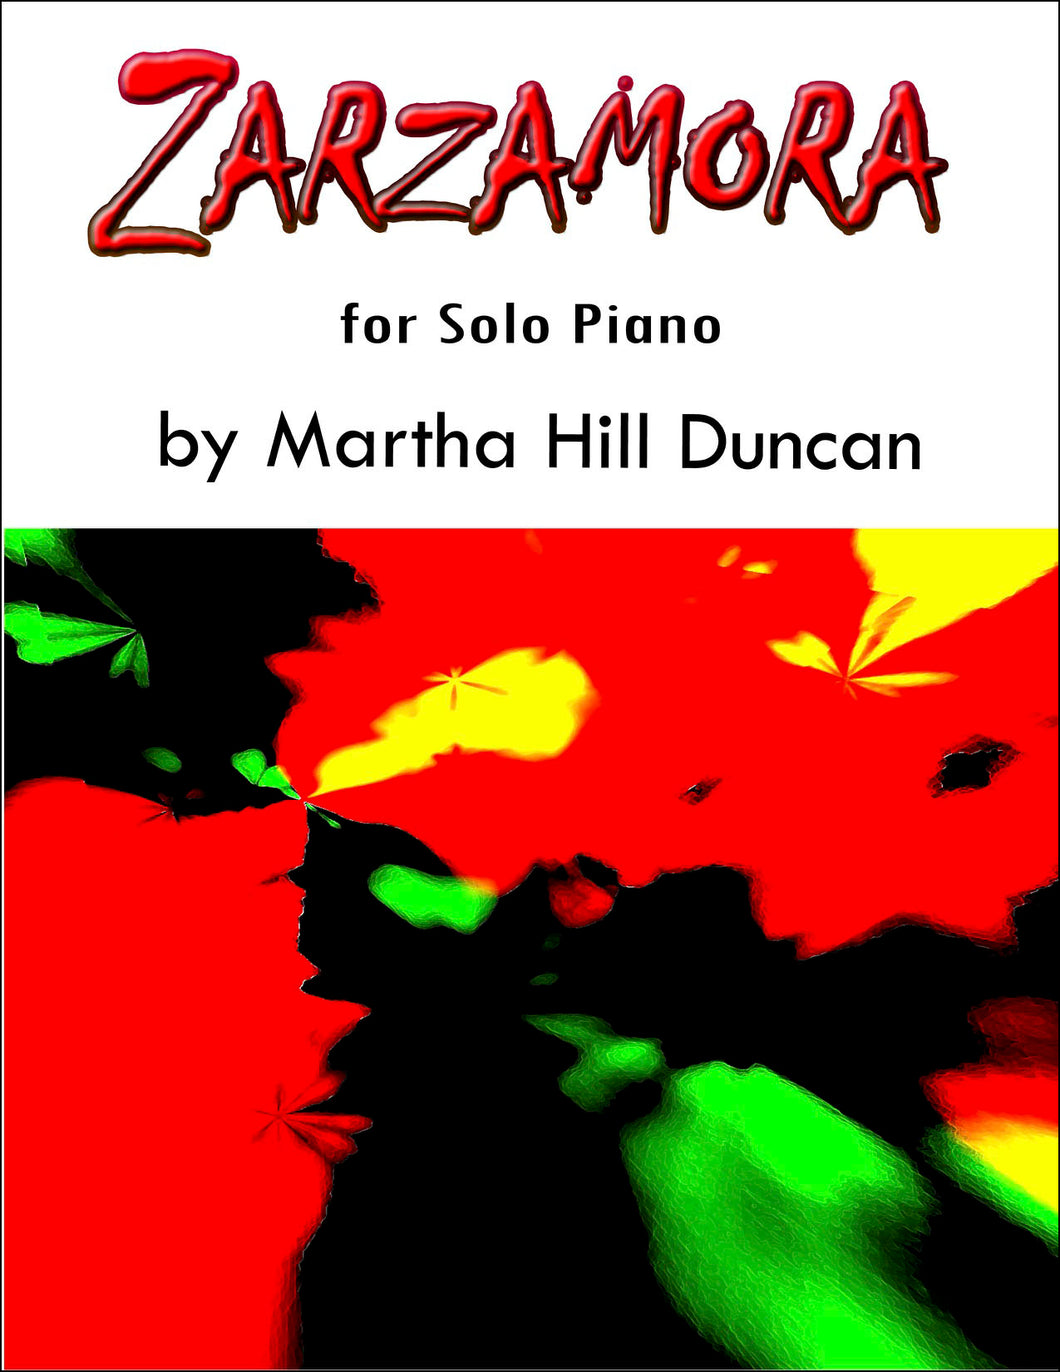 ZARZAMORA SUITE - Solo Piano Collection